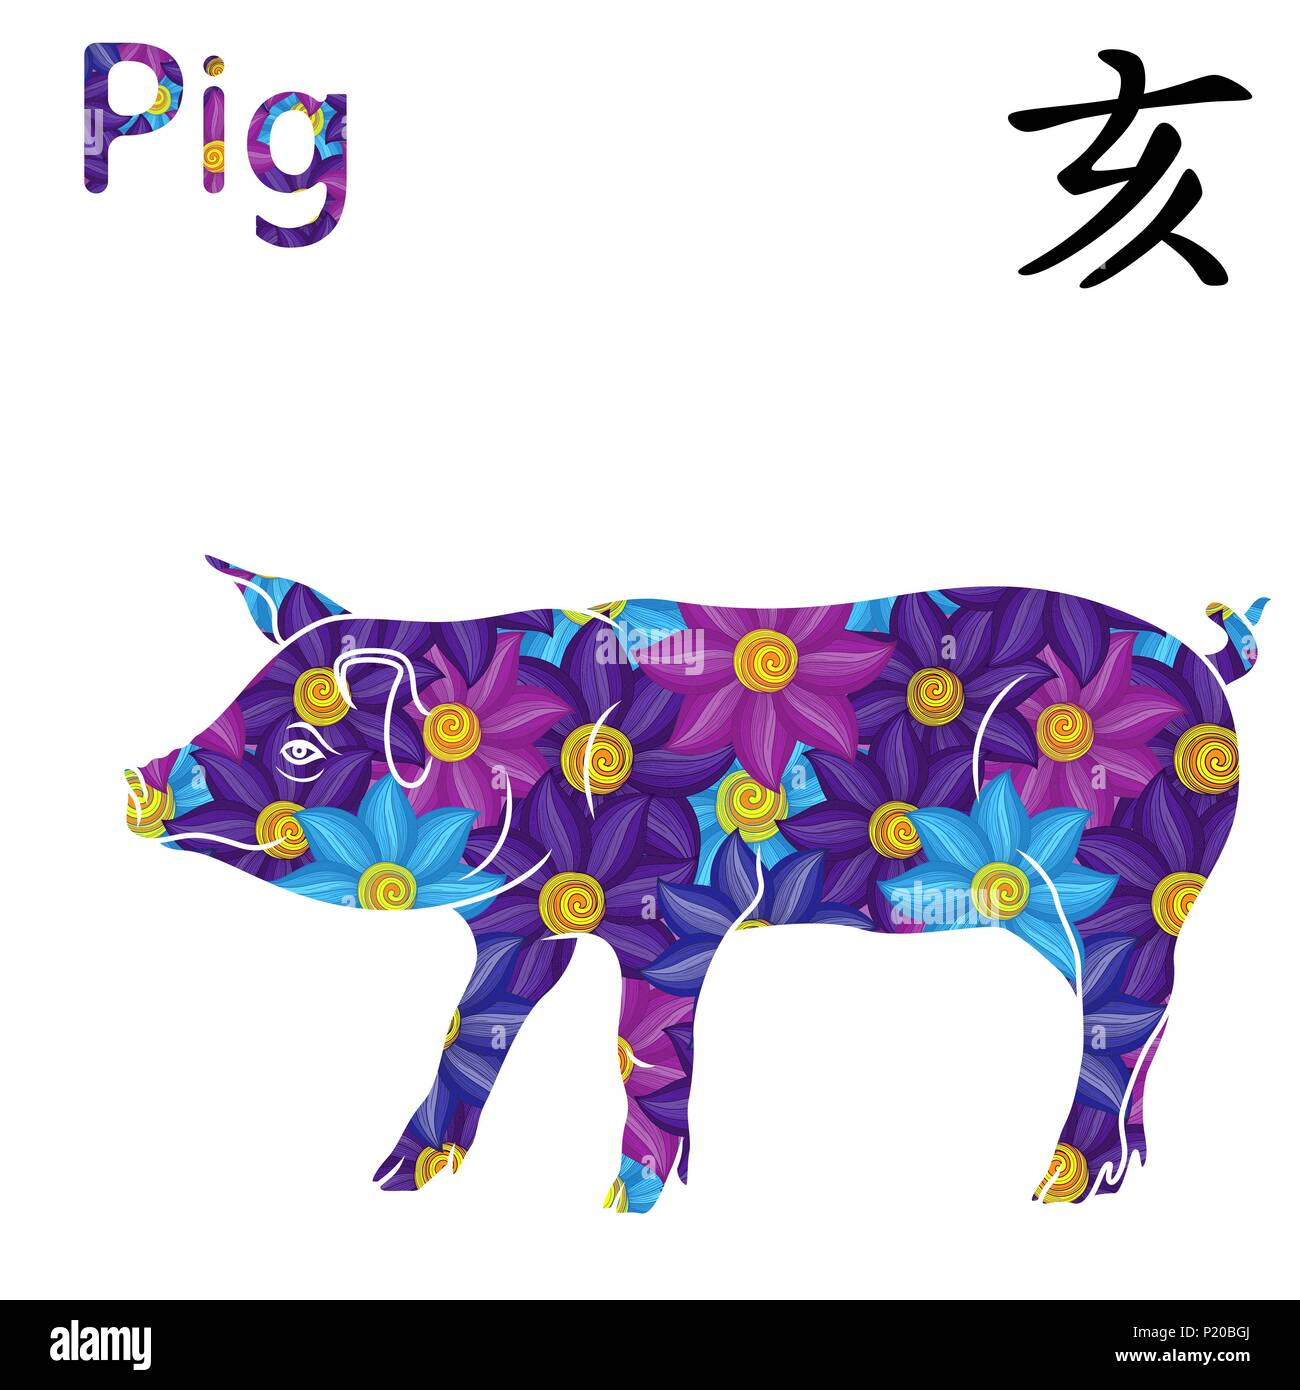 009eabda2 Chinese Zodiac Sign Pig, symbol of New Year on the Eastern calendar, hand  drawn vector stencil with blue, magenta and violet flowers isolated on a whi